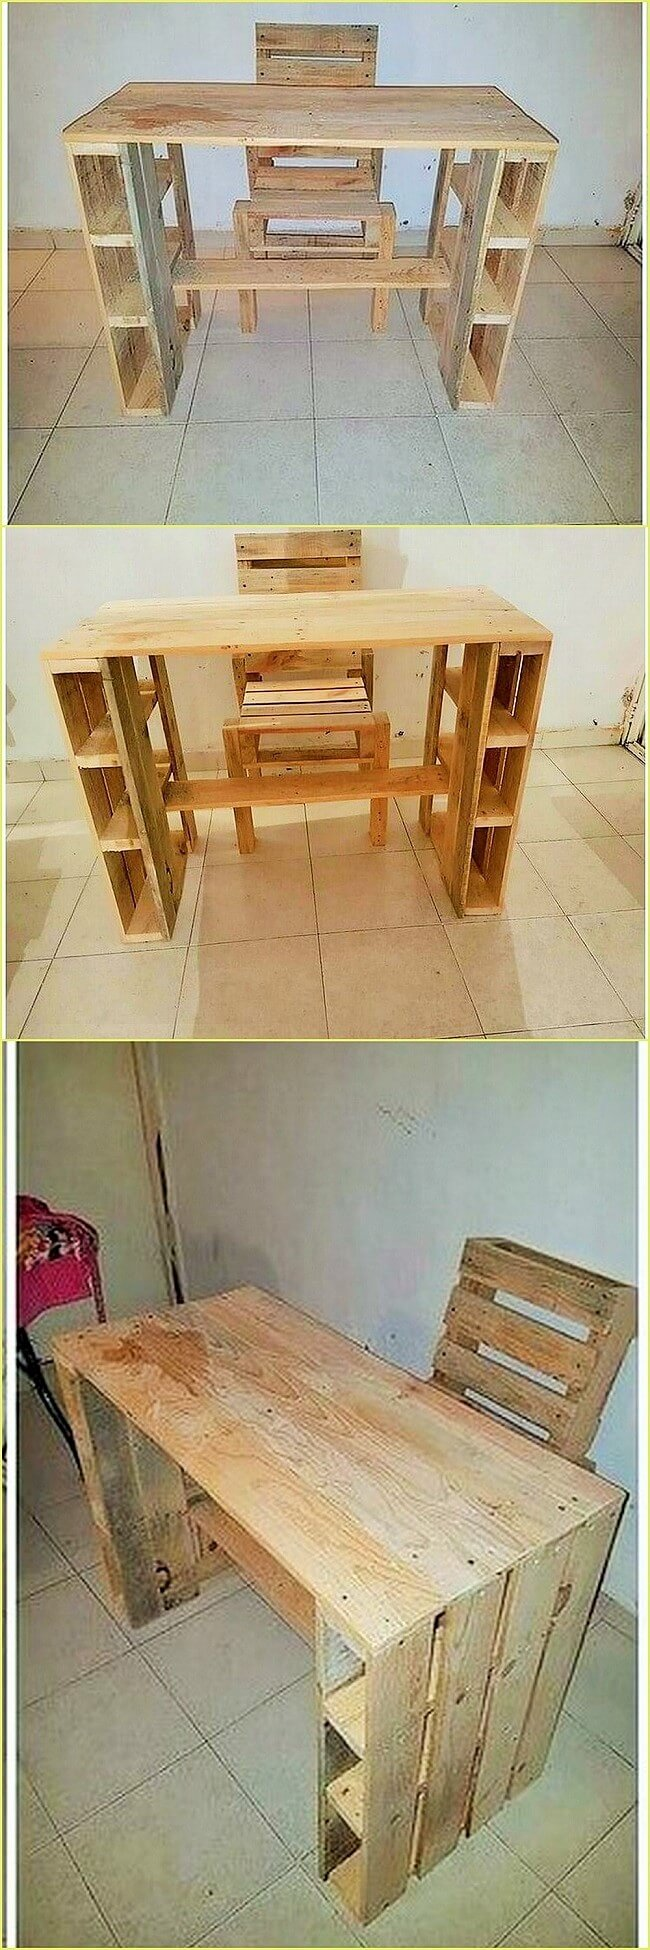 Wooden-Pallet-Desk-Table-and-Chair